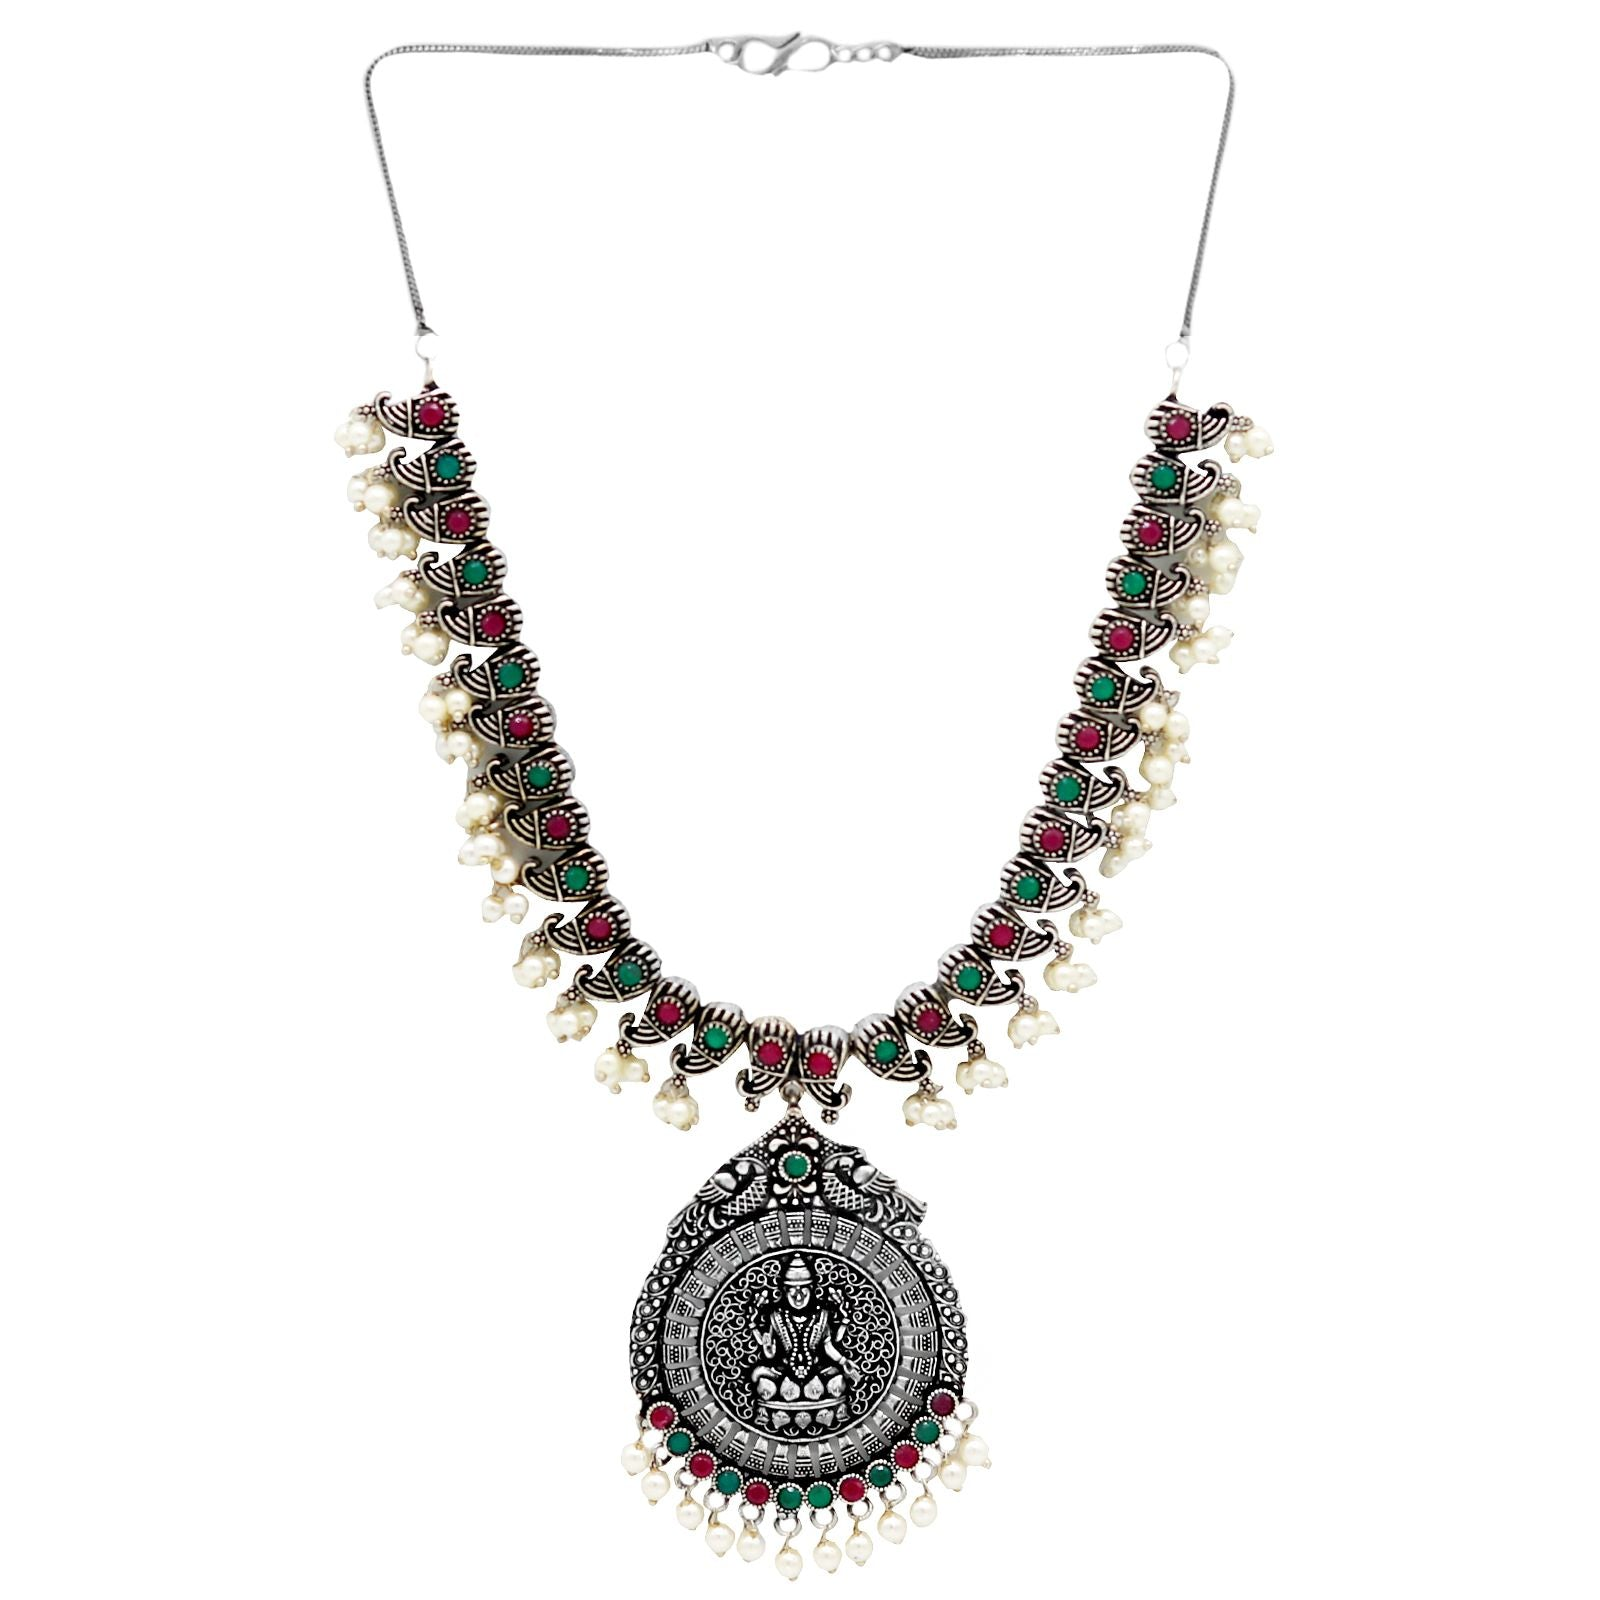 Ikshan Multi Colored Silver Oxidized Necklace Set - Teejh